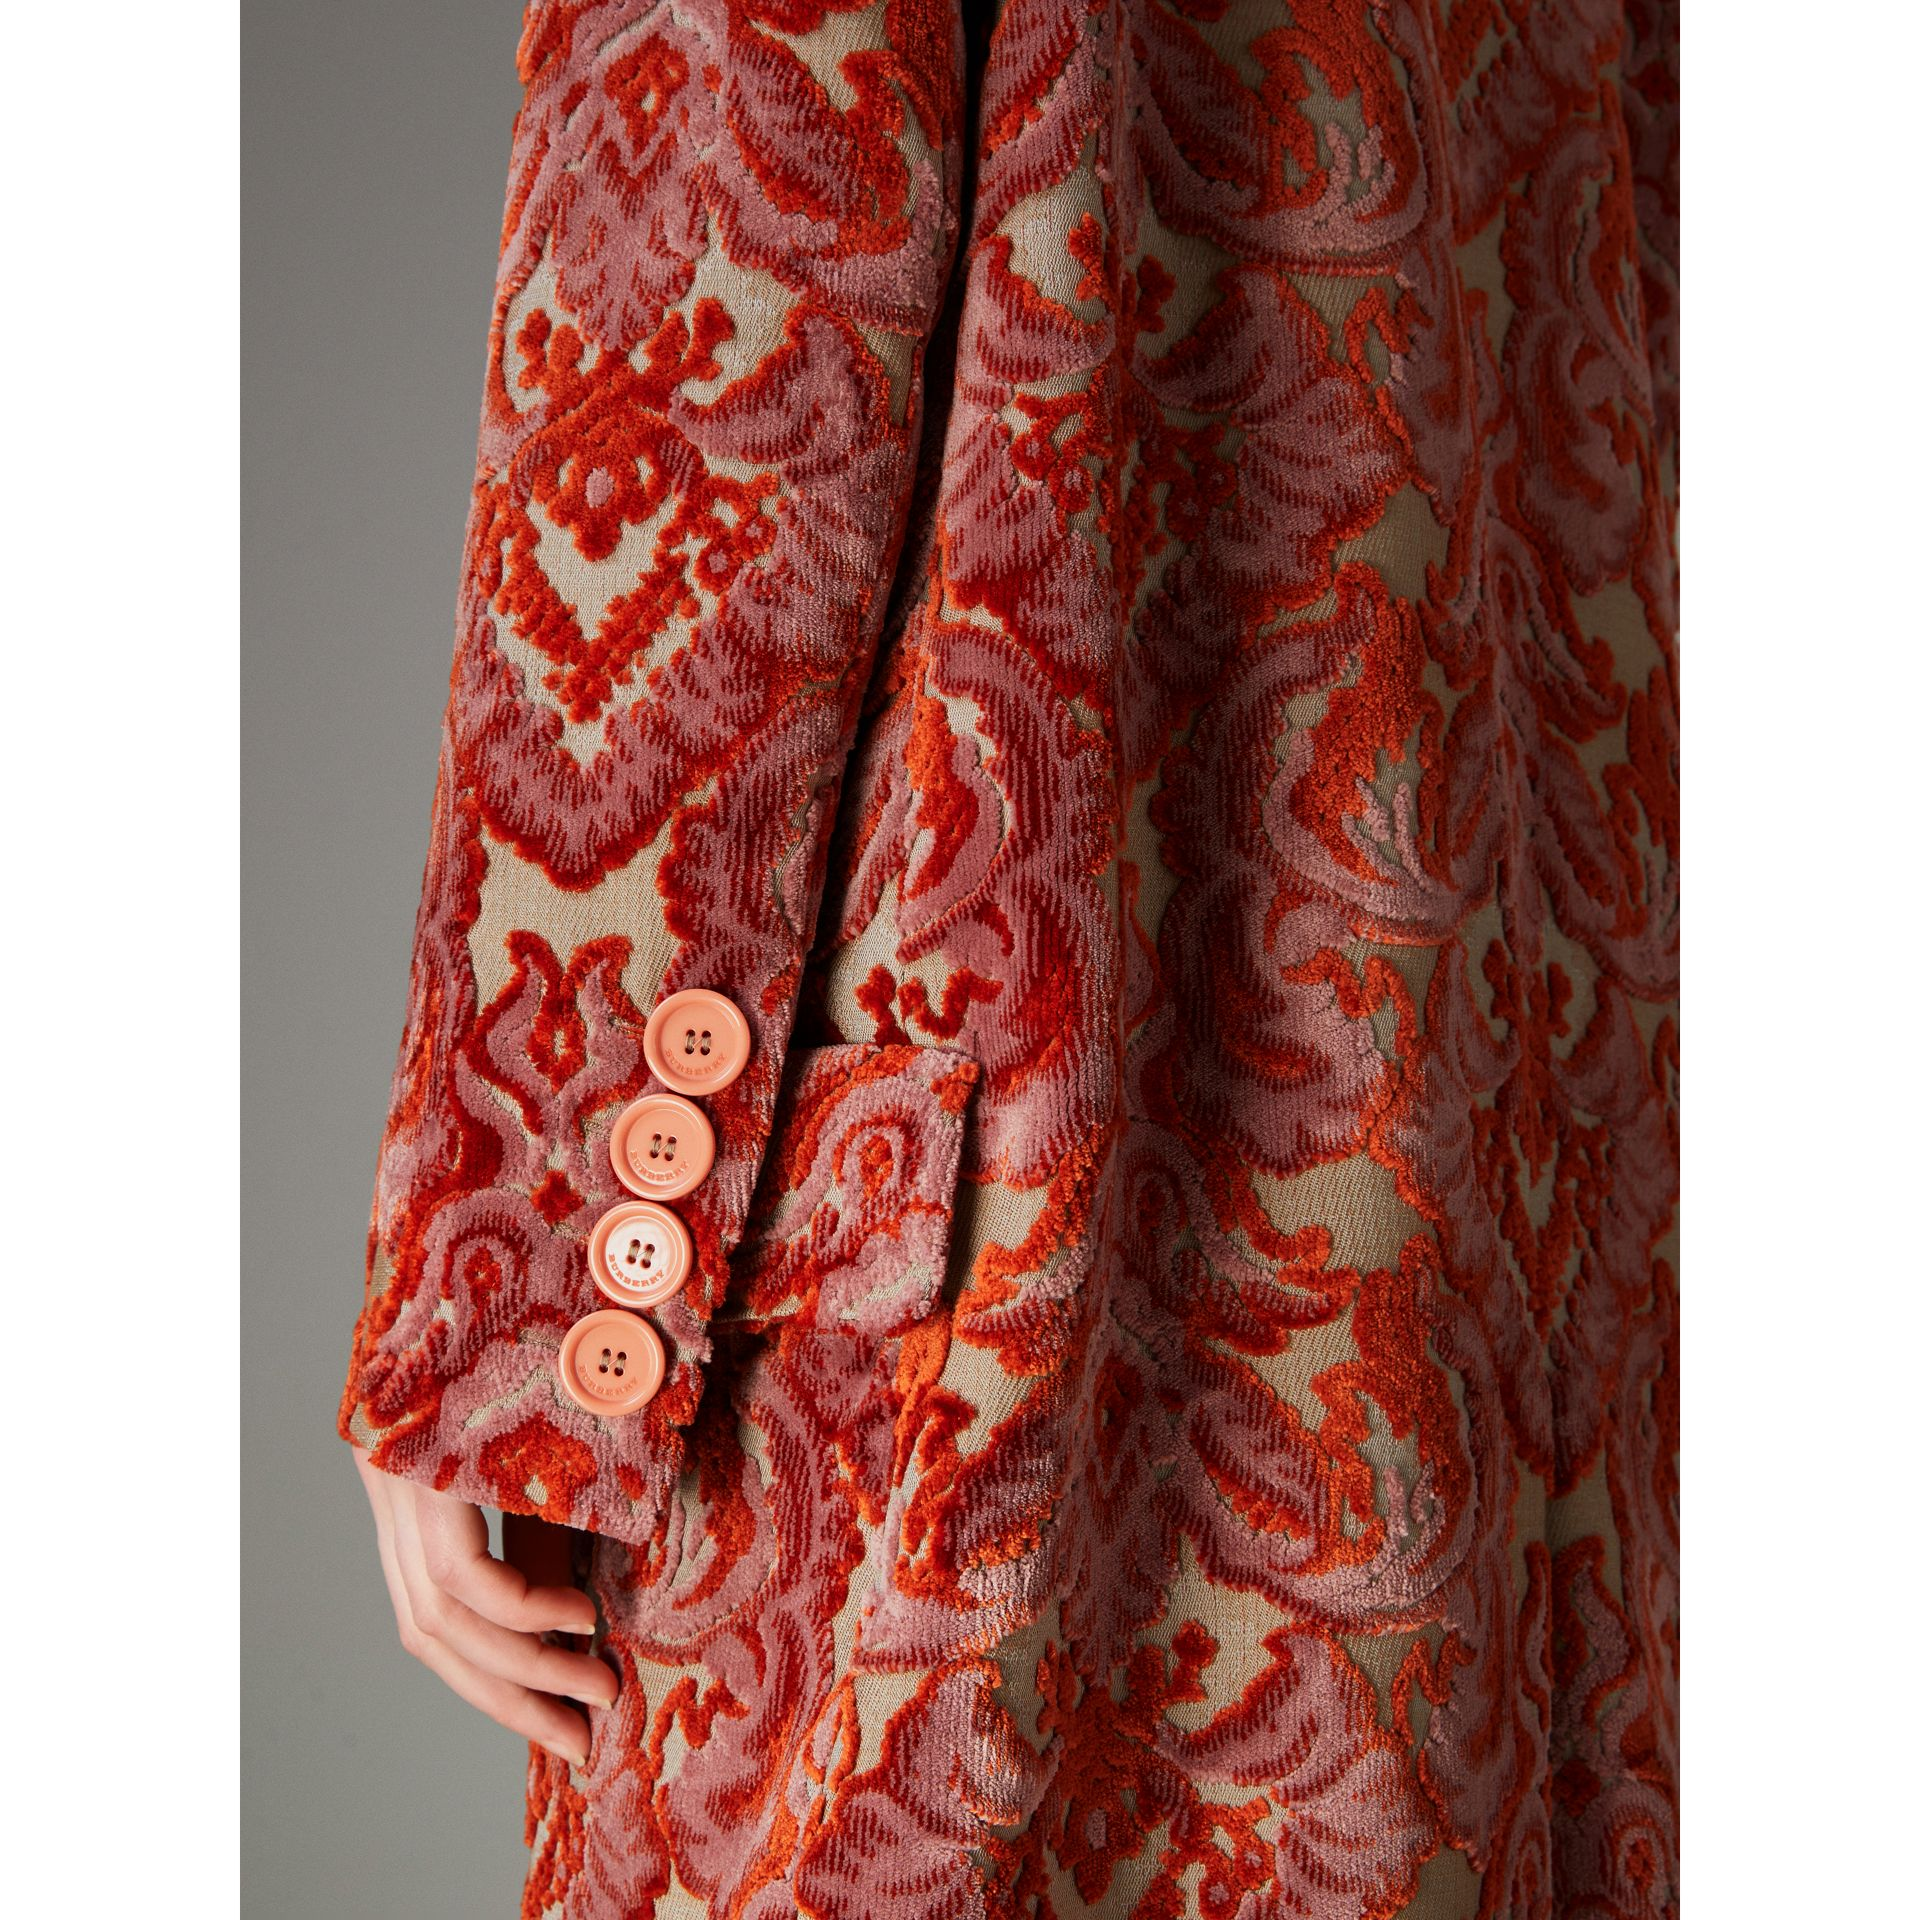 Damask Velvet Jacquard Tailored Coat in Rose Pink - Women | Burberry Canada - gallery image 1